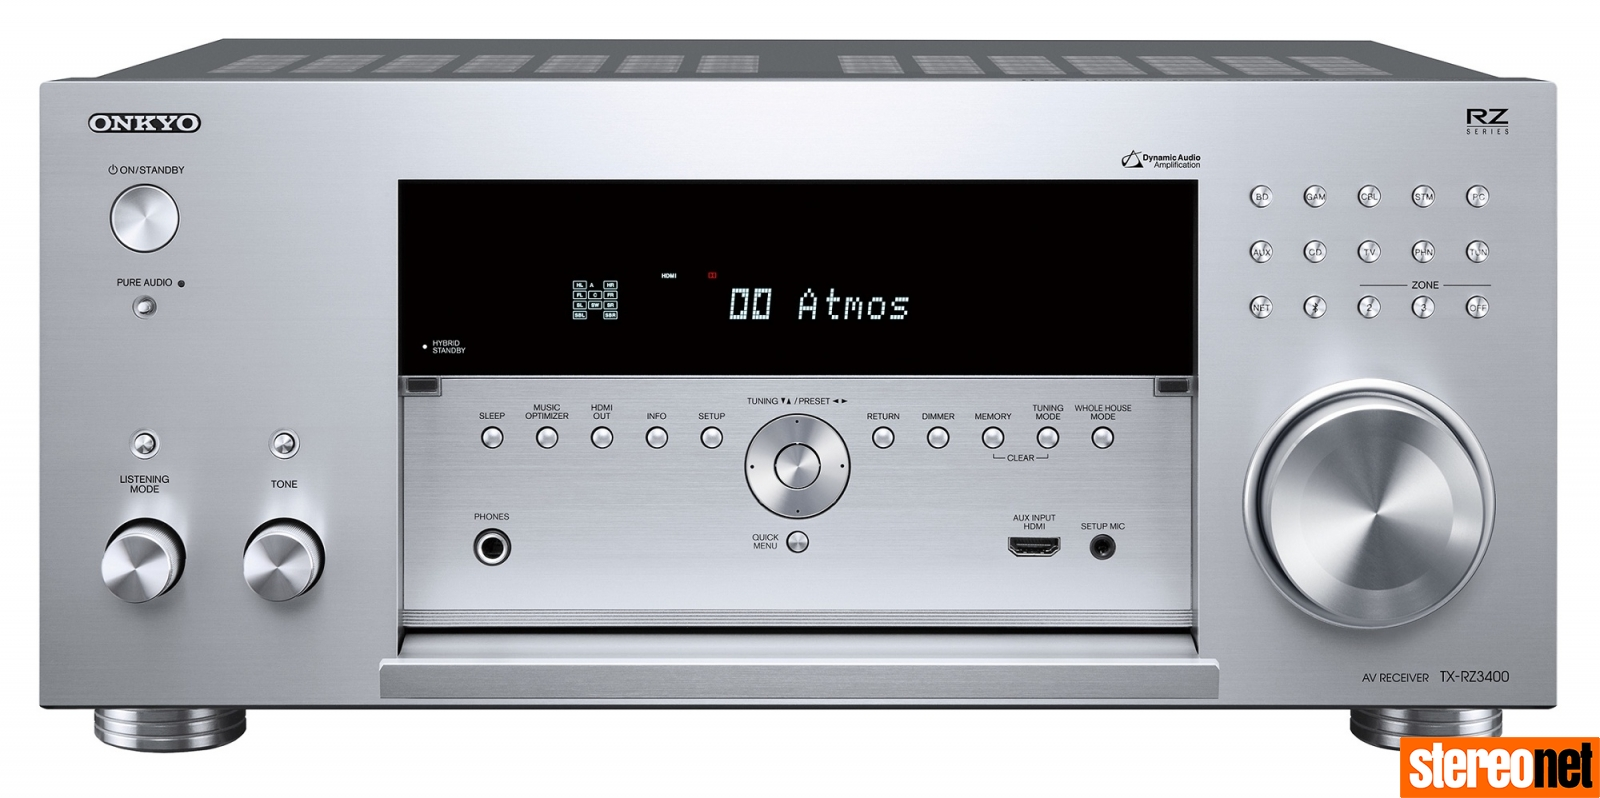 Onkyo Announces the TX-RZ3400 11 2-Channel Flagship A/V